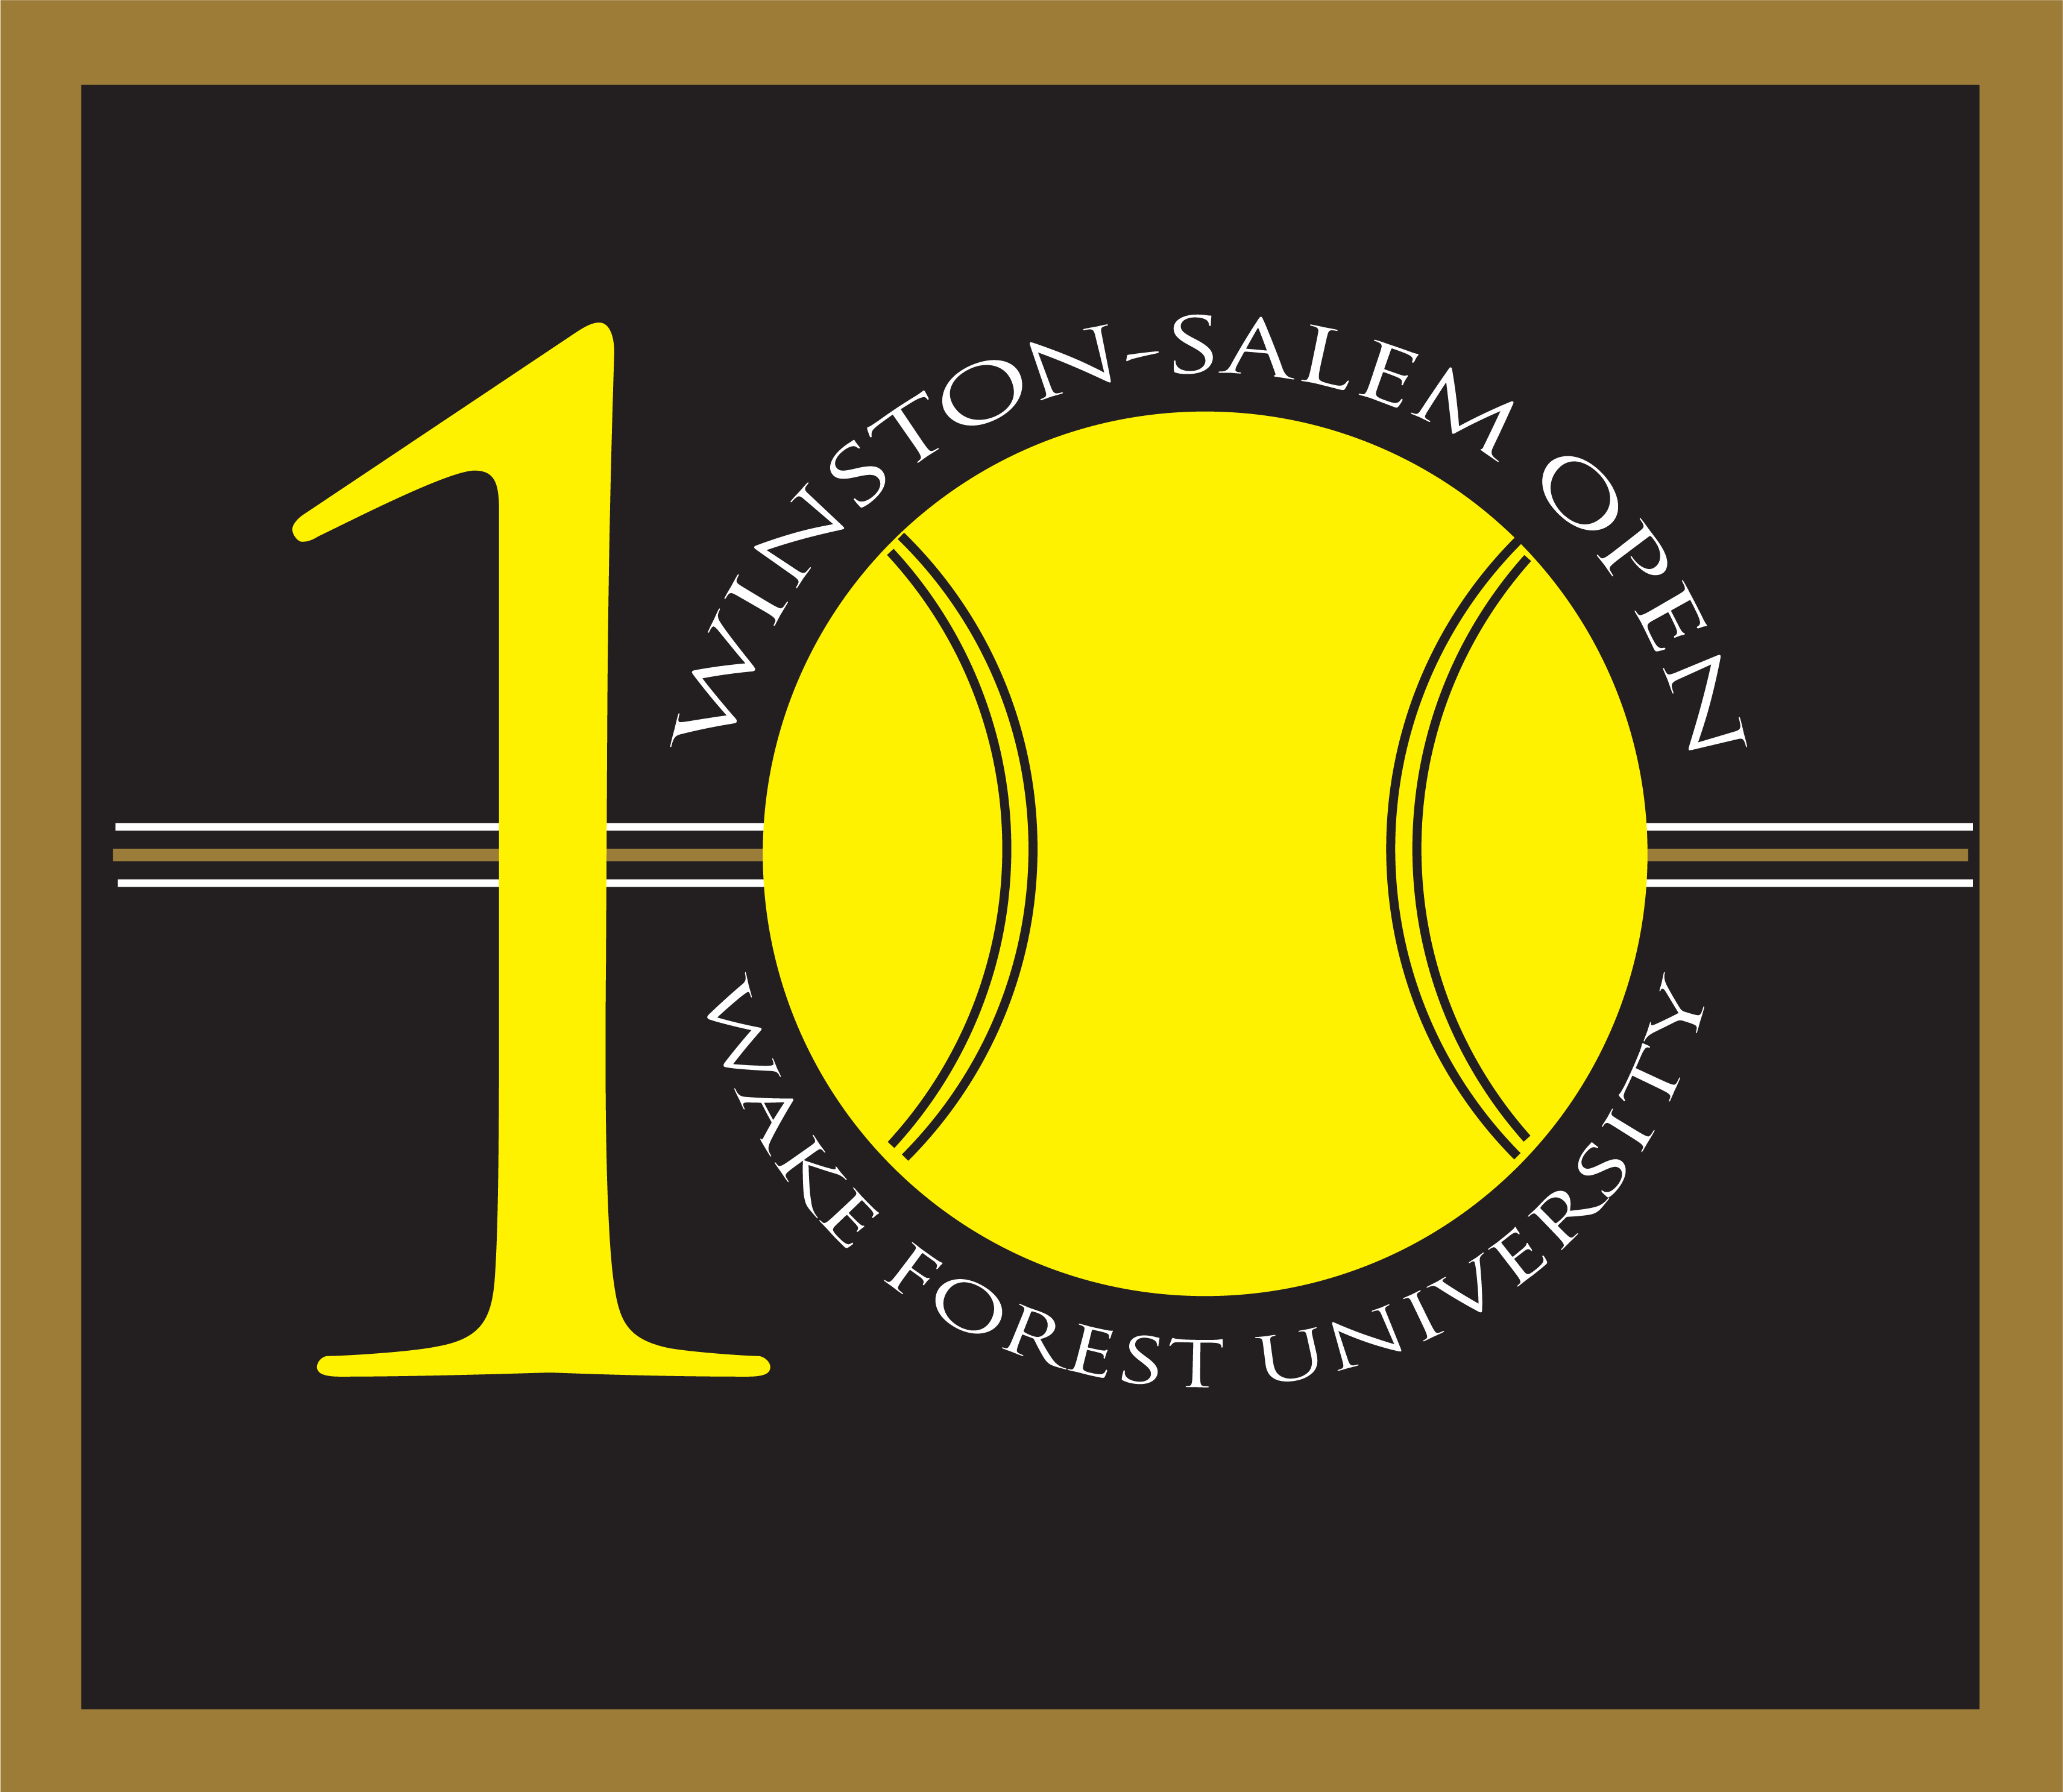 Winston-Salem Open 10th Anniversary